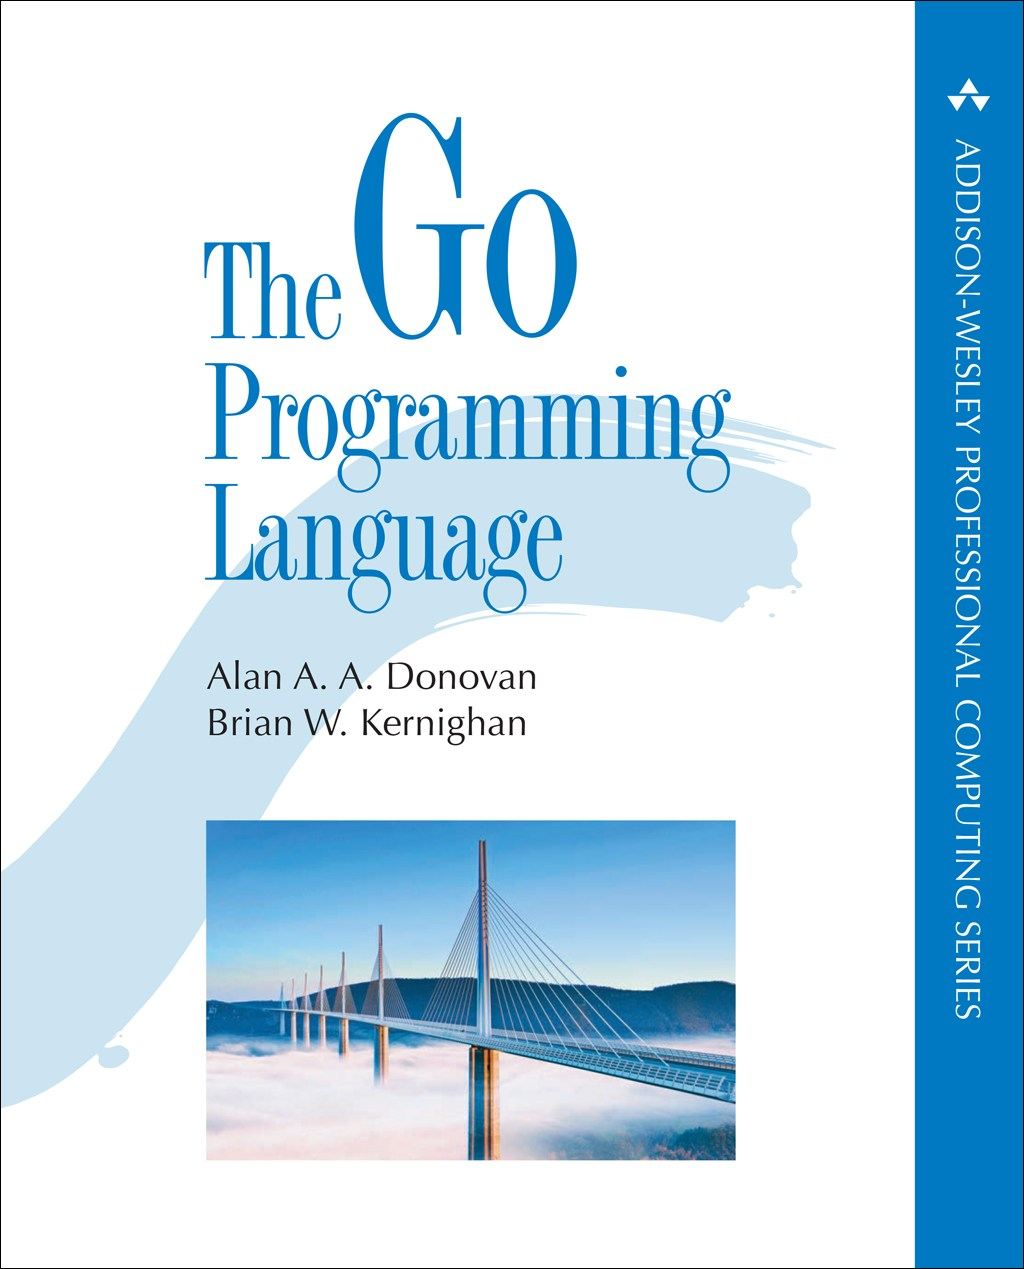 Go Programming Language, The